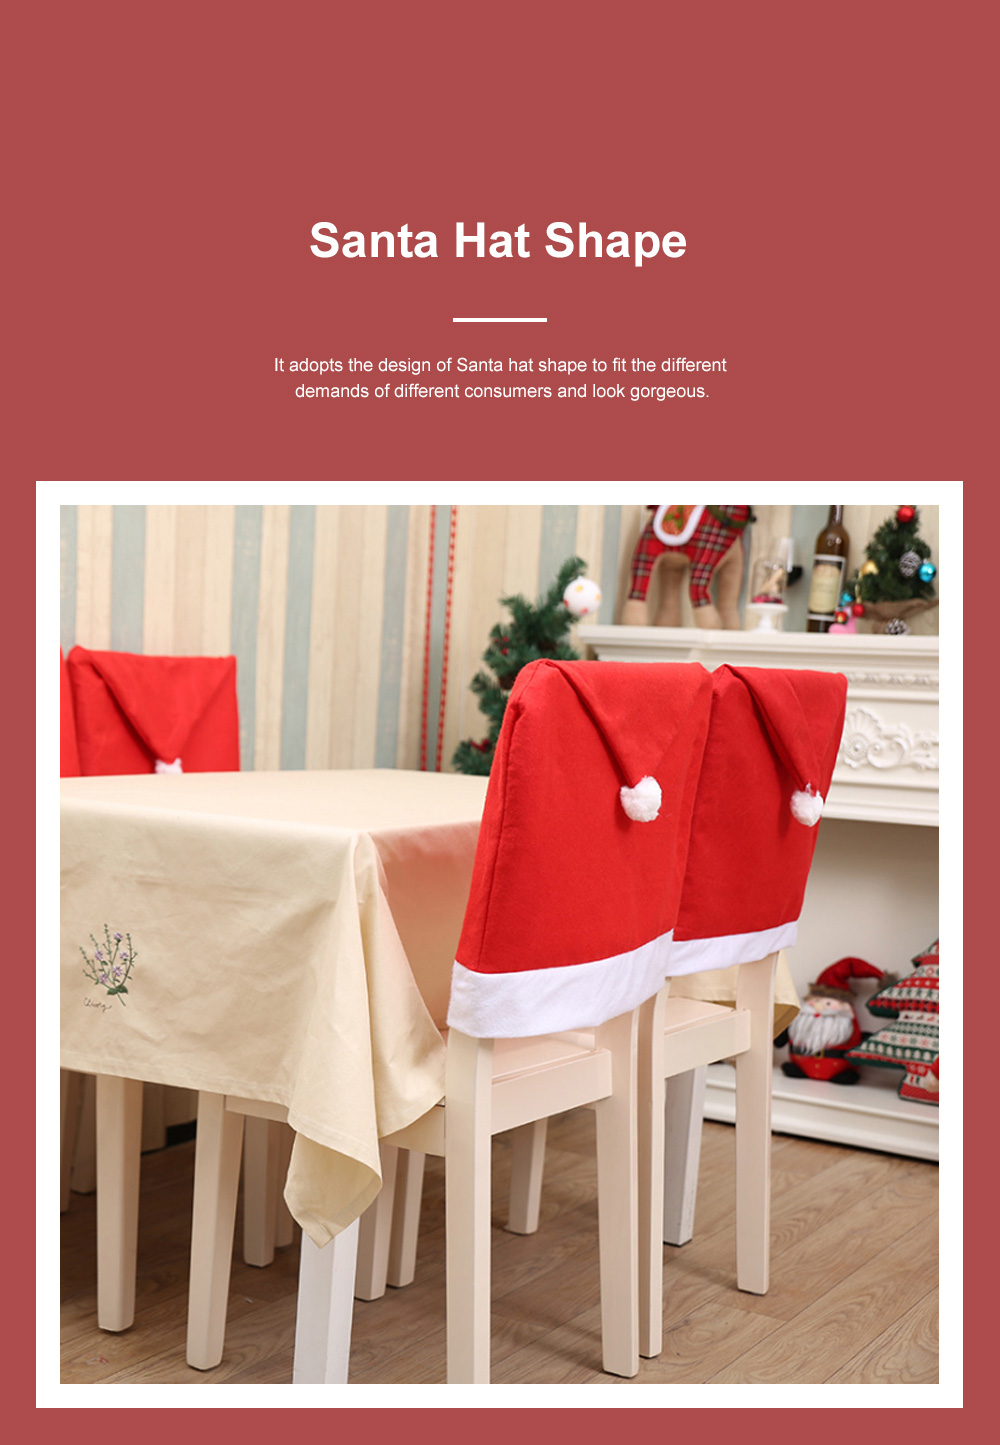 Christmas Chair Cover Santa Hat Shape Red Adornment Table Decorations Festival Atmosphere Non-woven Fabric Cover 4